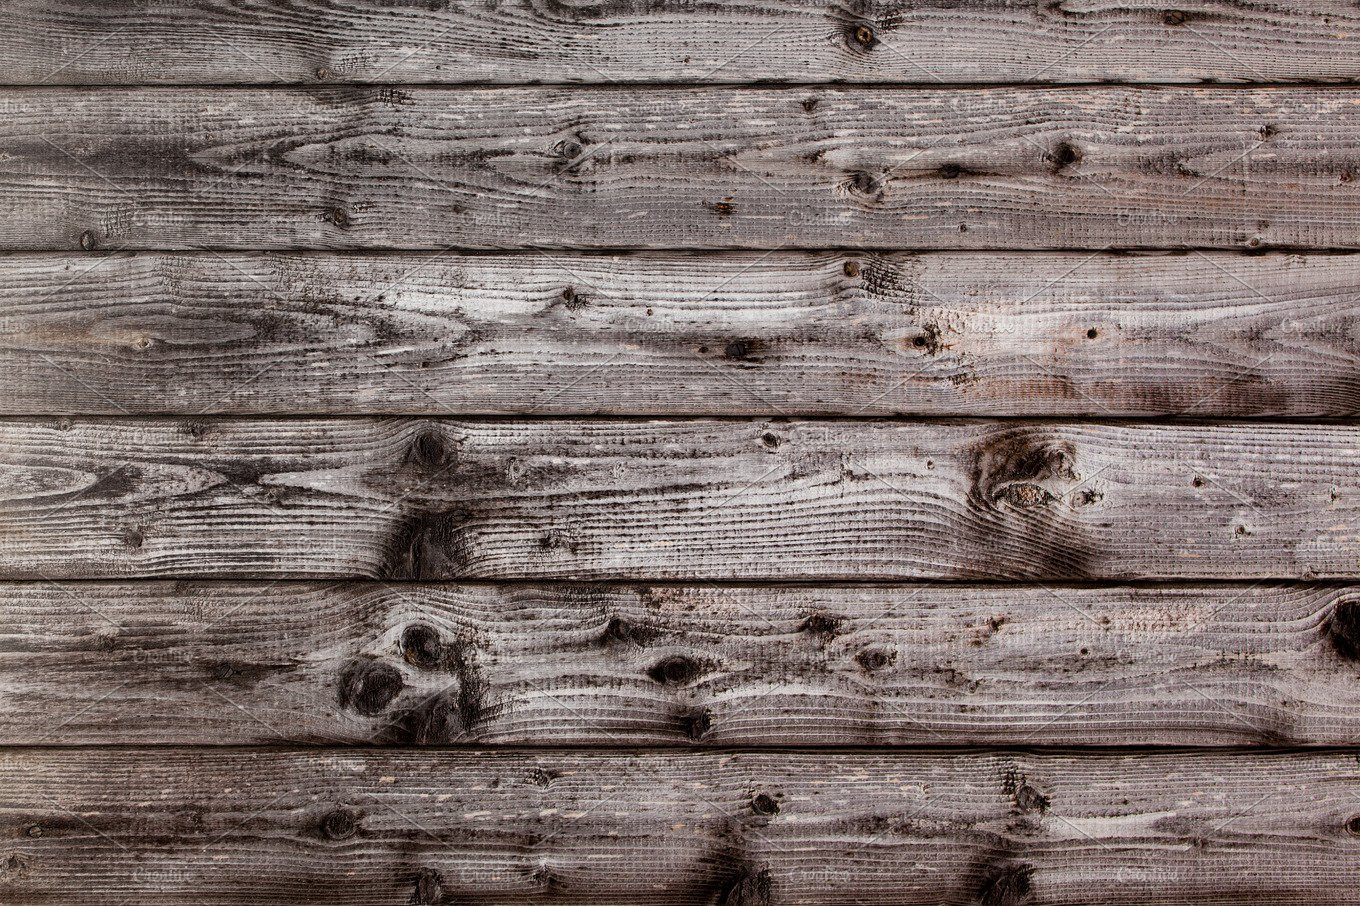 rustic wooden background - photo #32